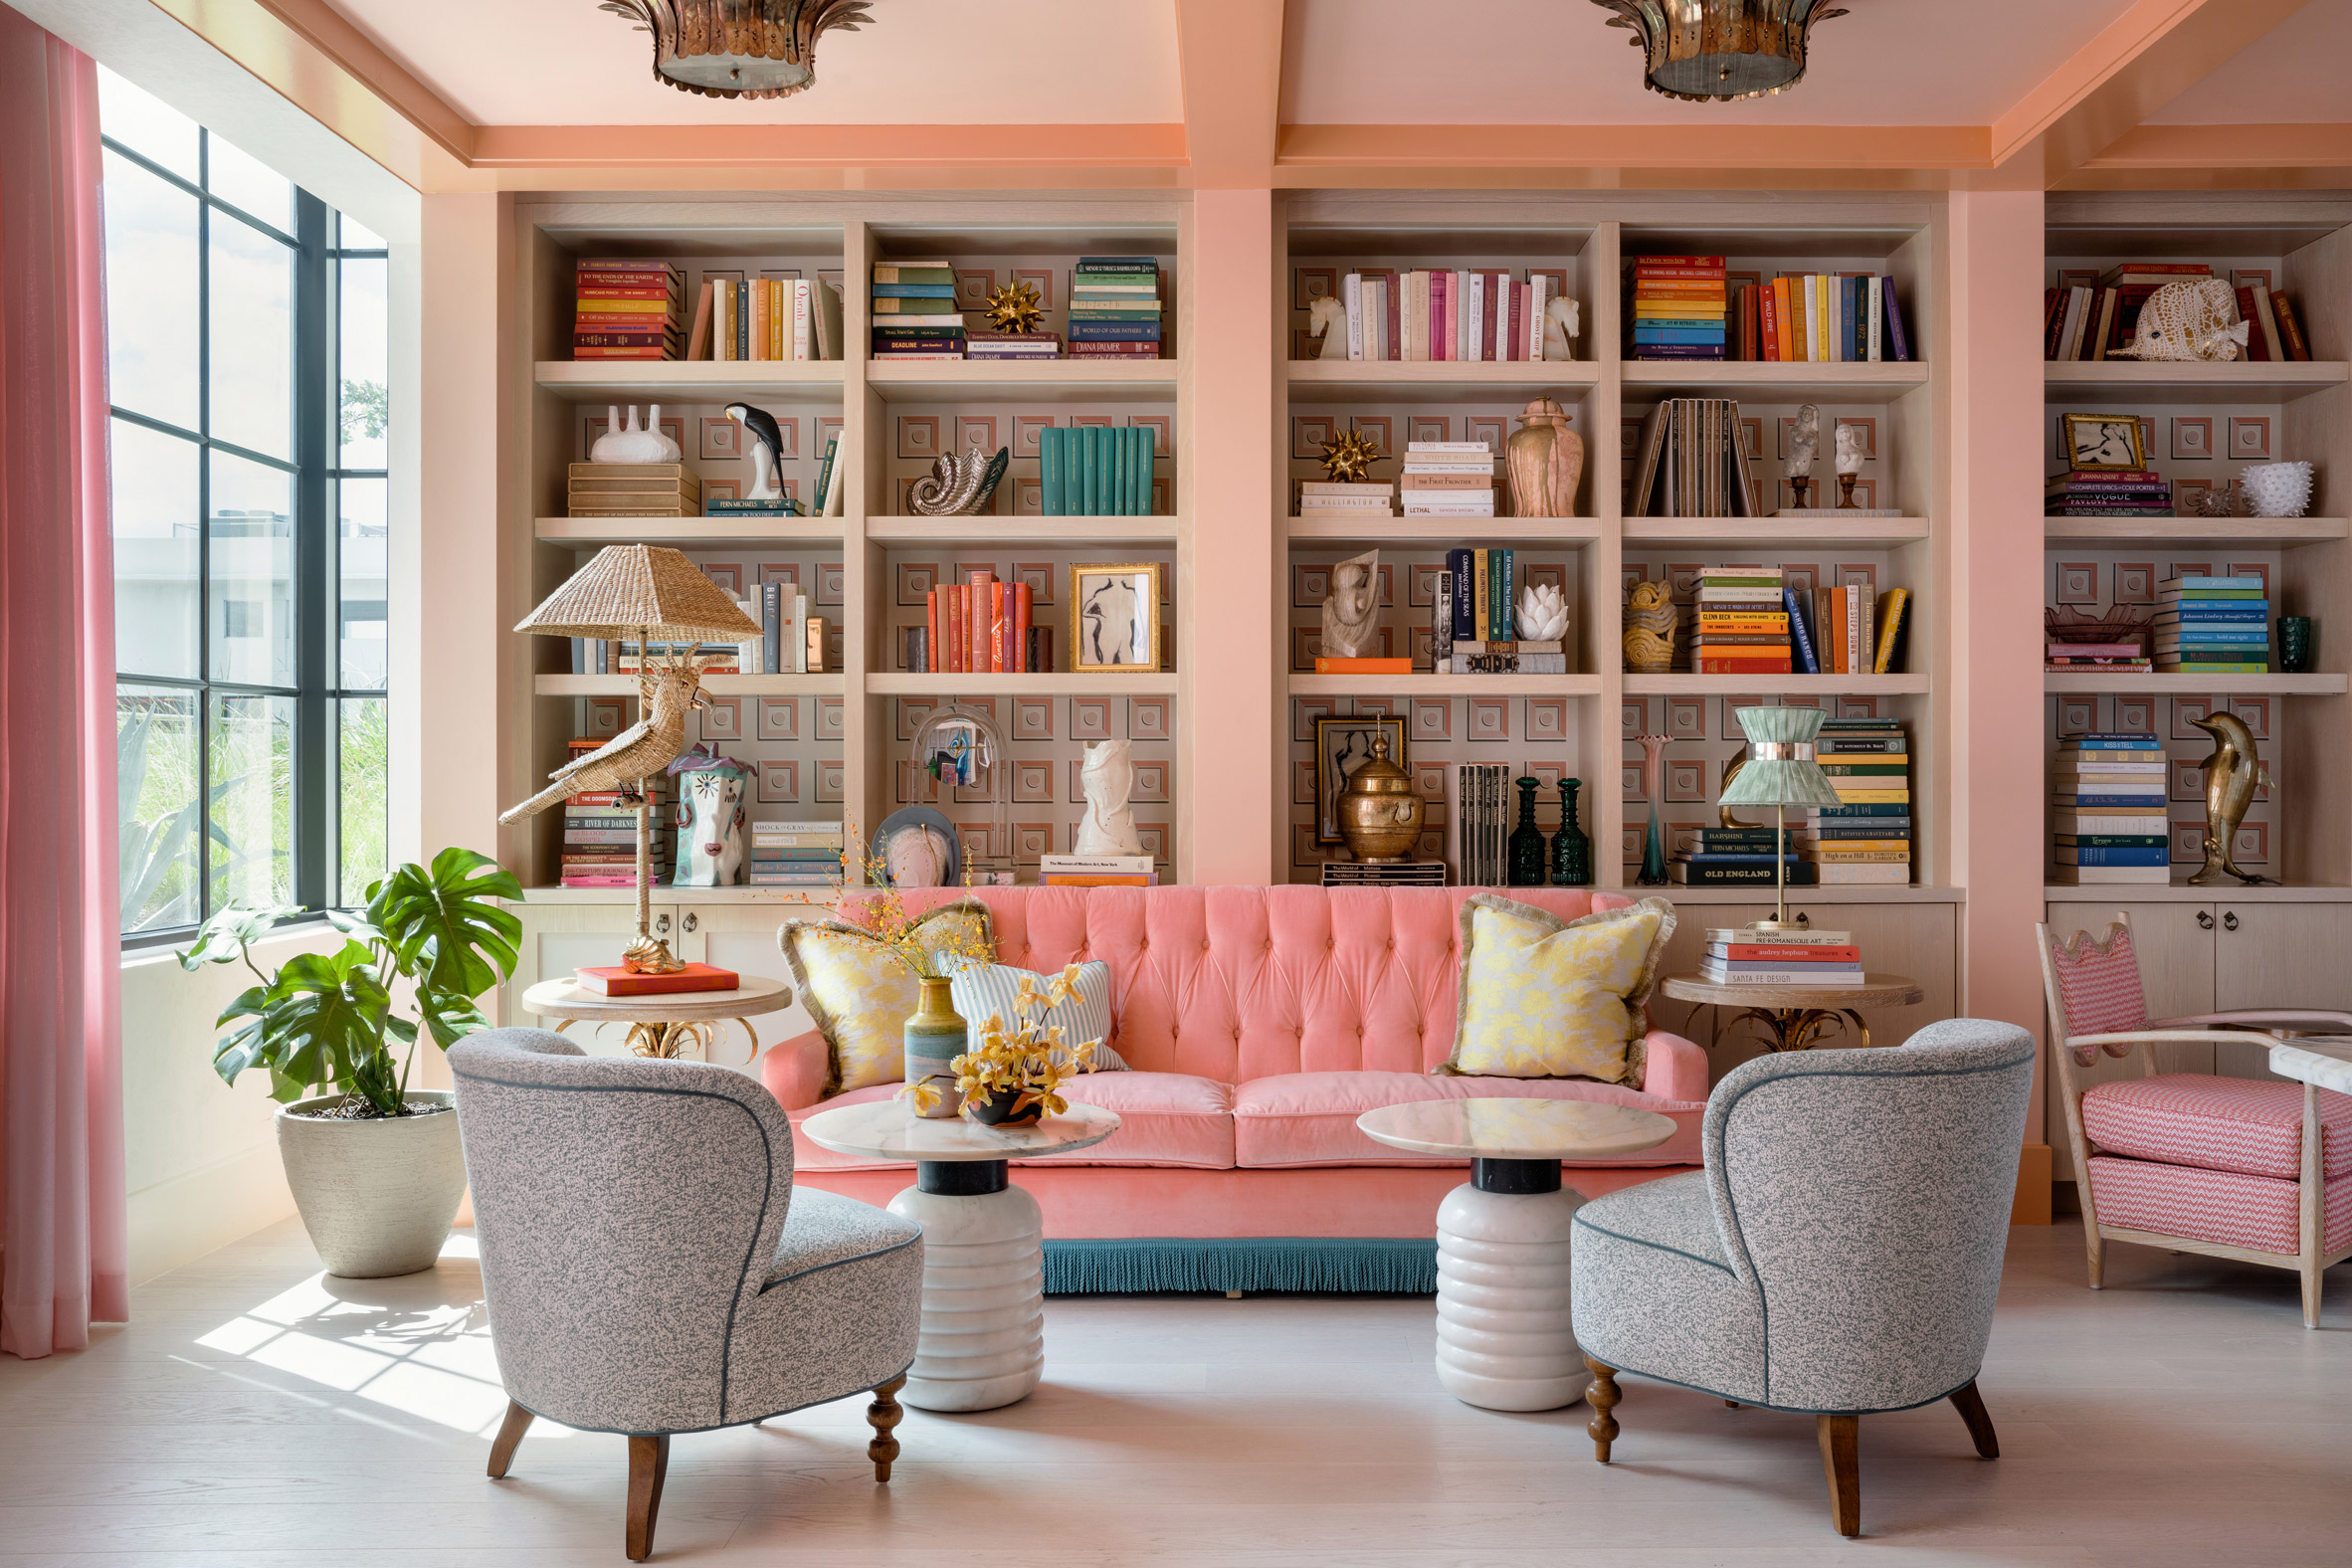 Library of the Goodtime Hotel with pink couch and built-in bookshelves